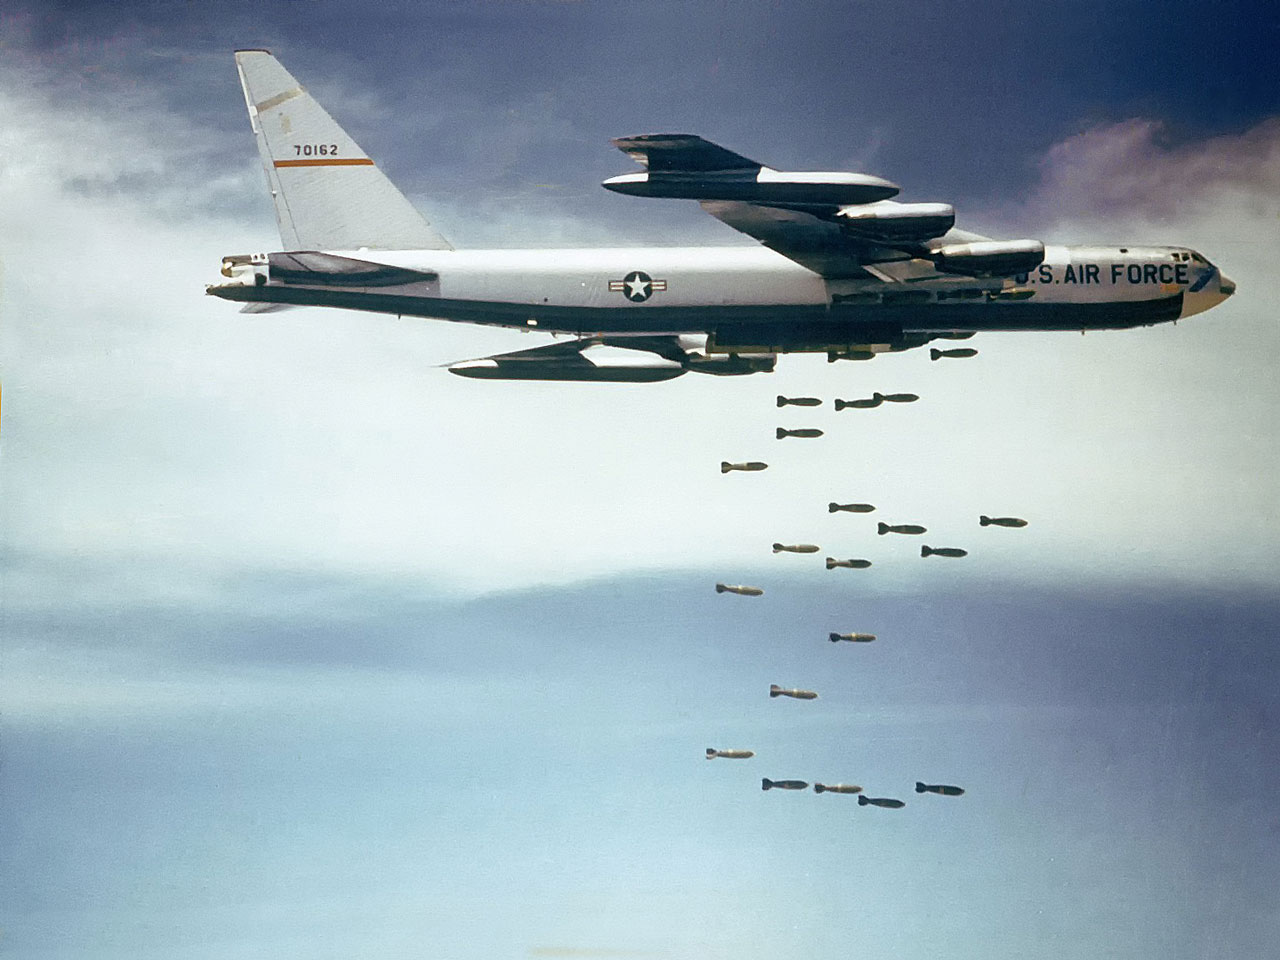 B-52 Stratofortress dropping bombs in the 1960's over Vietnam